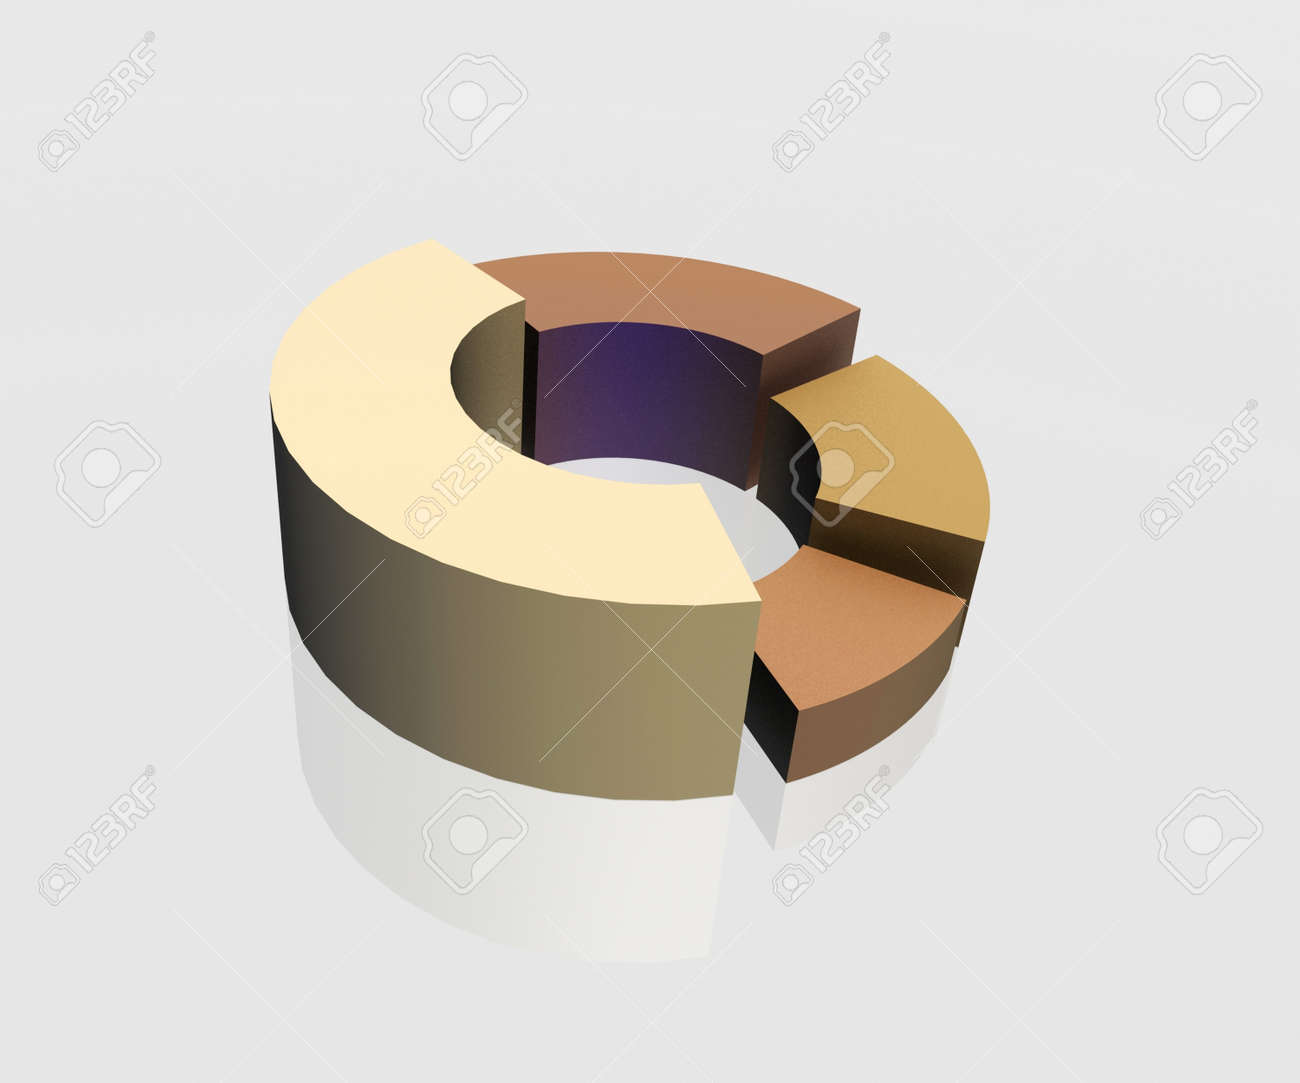 hight resolution of 3d circular diagram on white background stock photo 12050897